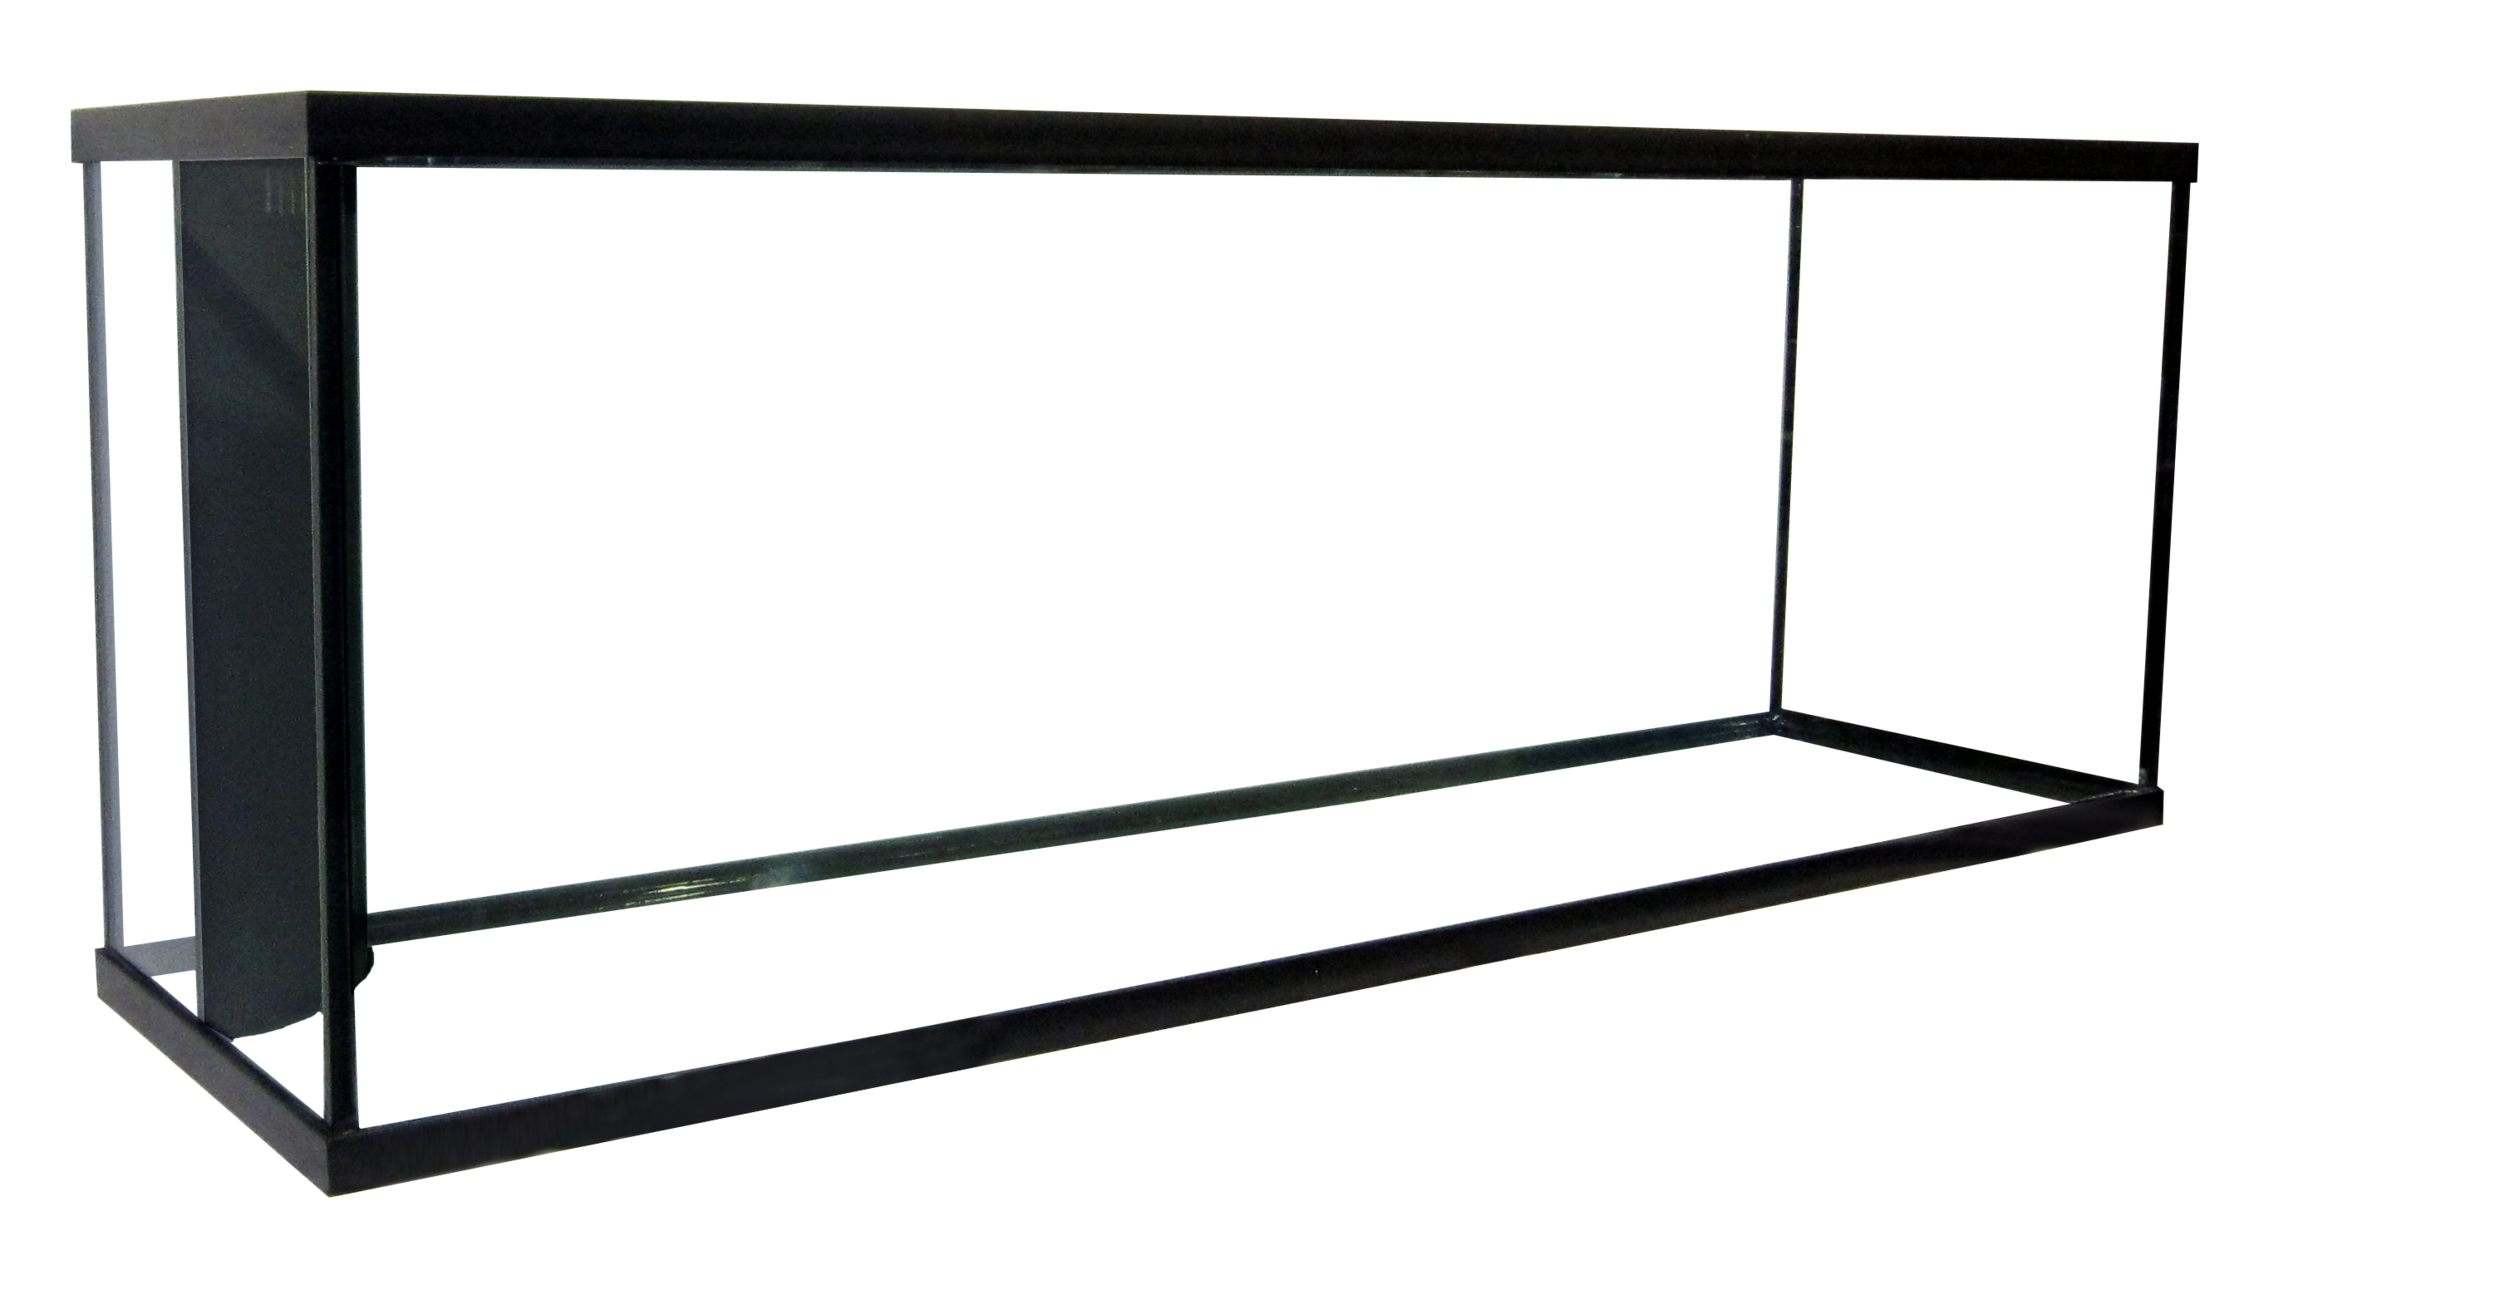 "135 Regular Reef Ready Aquarium - 72x18x24""   SKU#: AM18135  UPC#: 7-49729-18135-4  Product Dimension: 72.5""x18.5""x25.5""  Capacity: Approximately 135 gallons  Weight: 213.4 lbs"